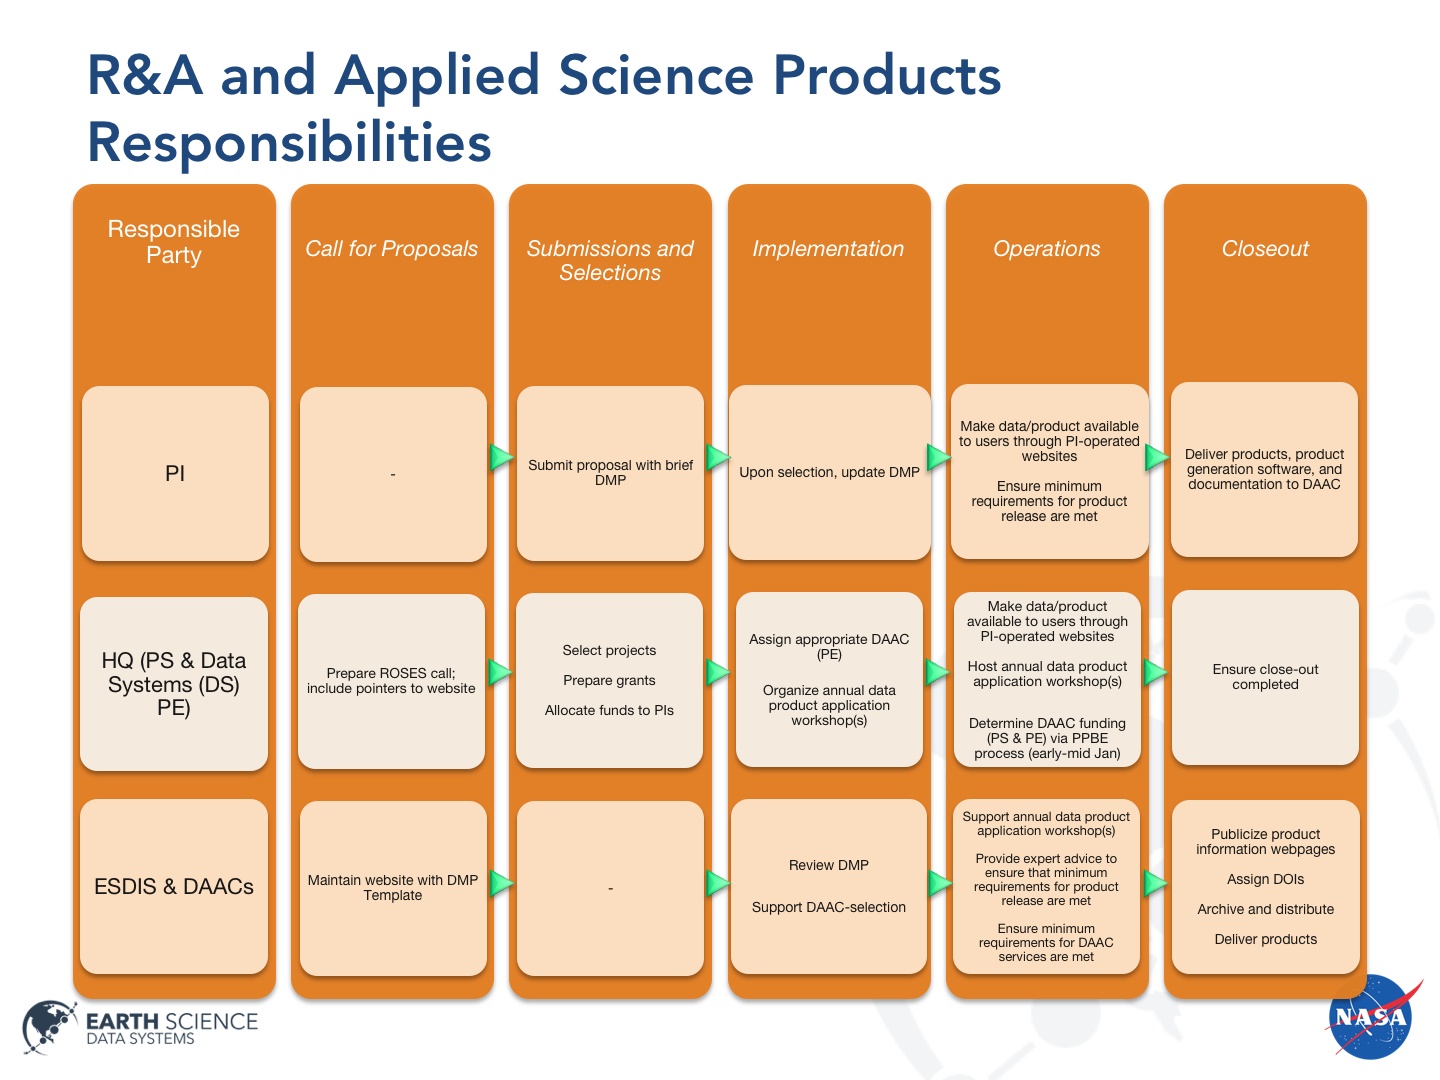 Community data: Research and Applied Sciences Requirements